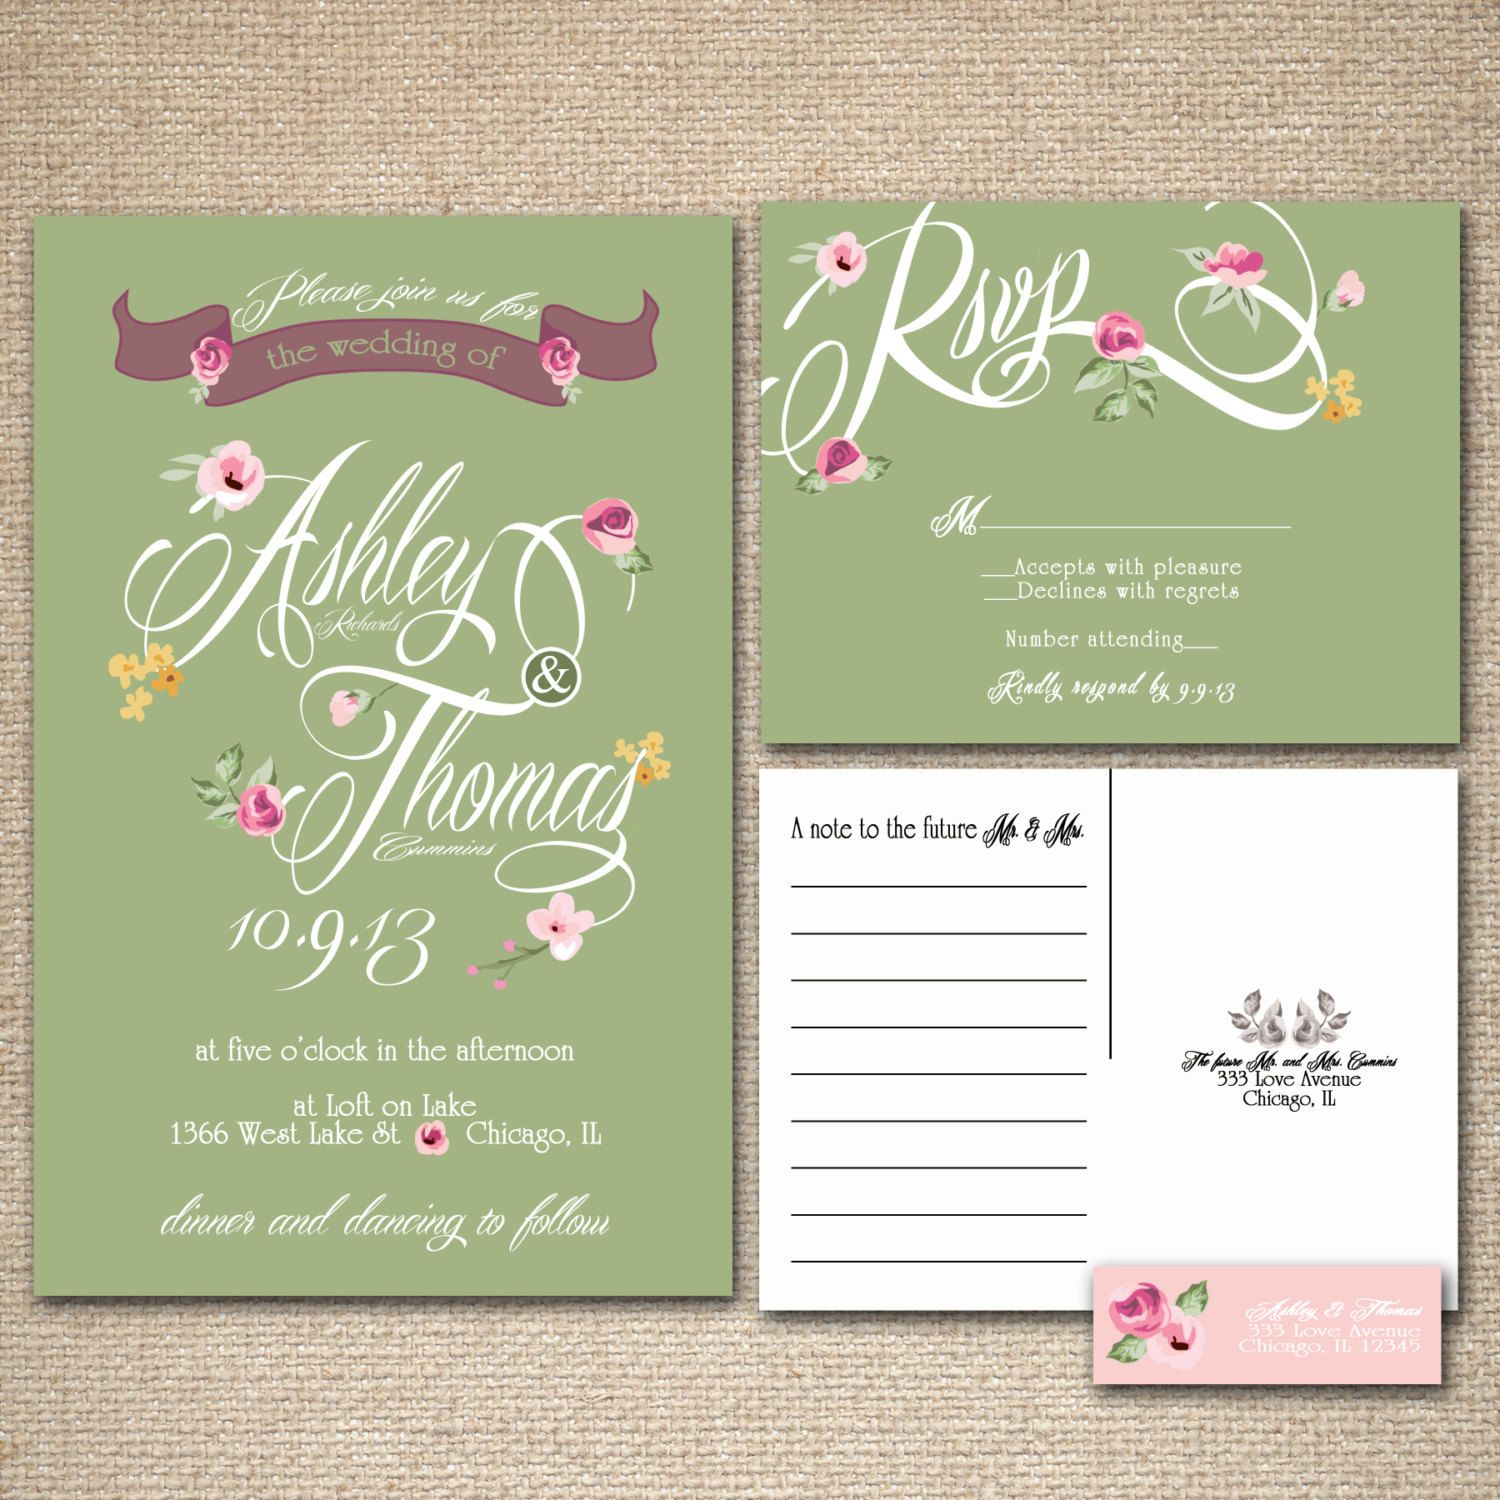 Floral Wedding Invitations Green and Pink by InvitingMoments | Mint ...